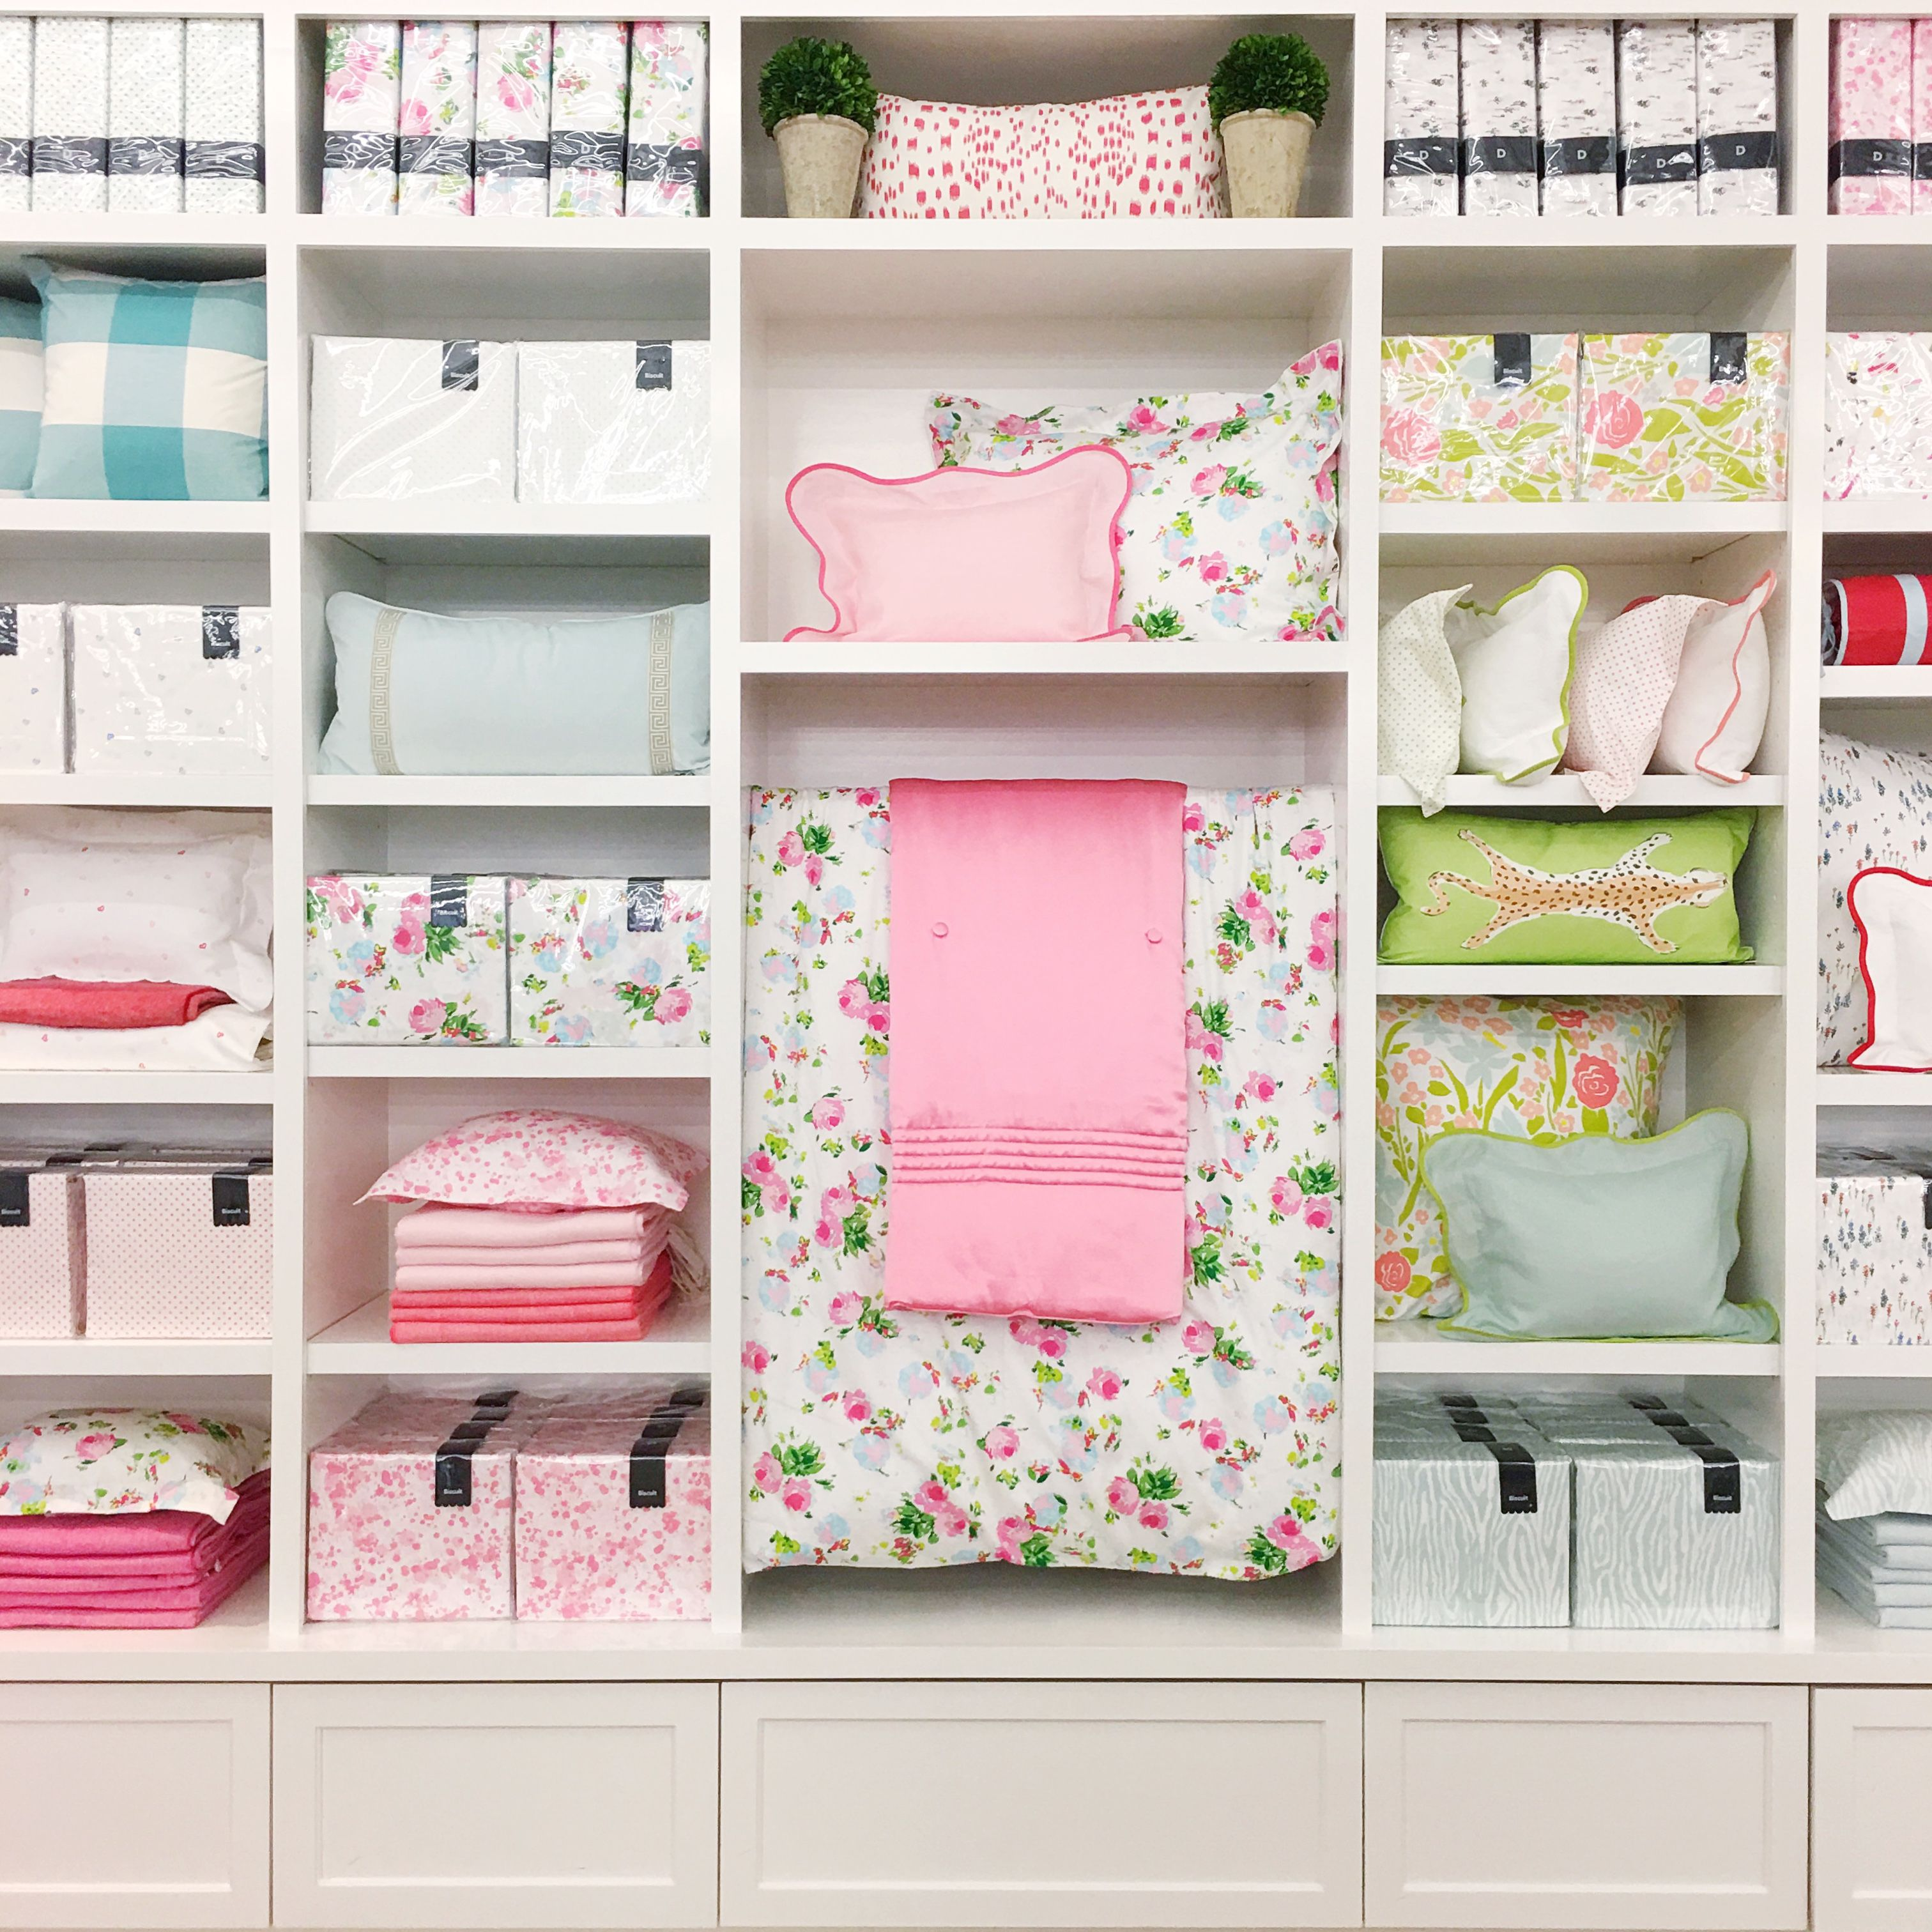 Home Decor Stores Houston Tx: Biscuit Bedding Shop Display In Houston Texas